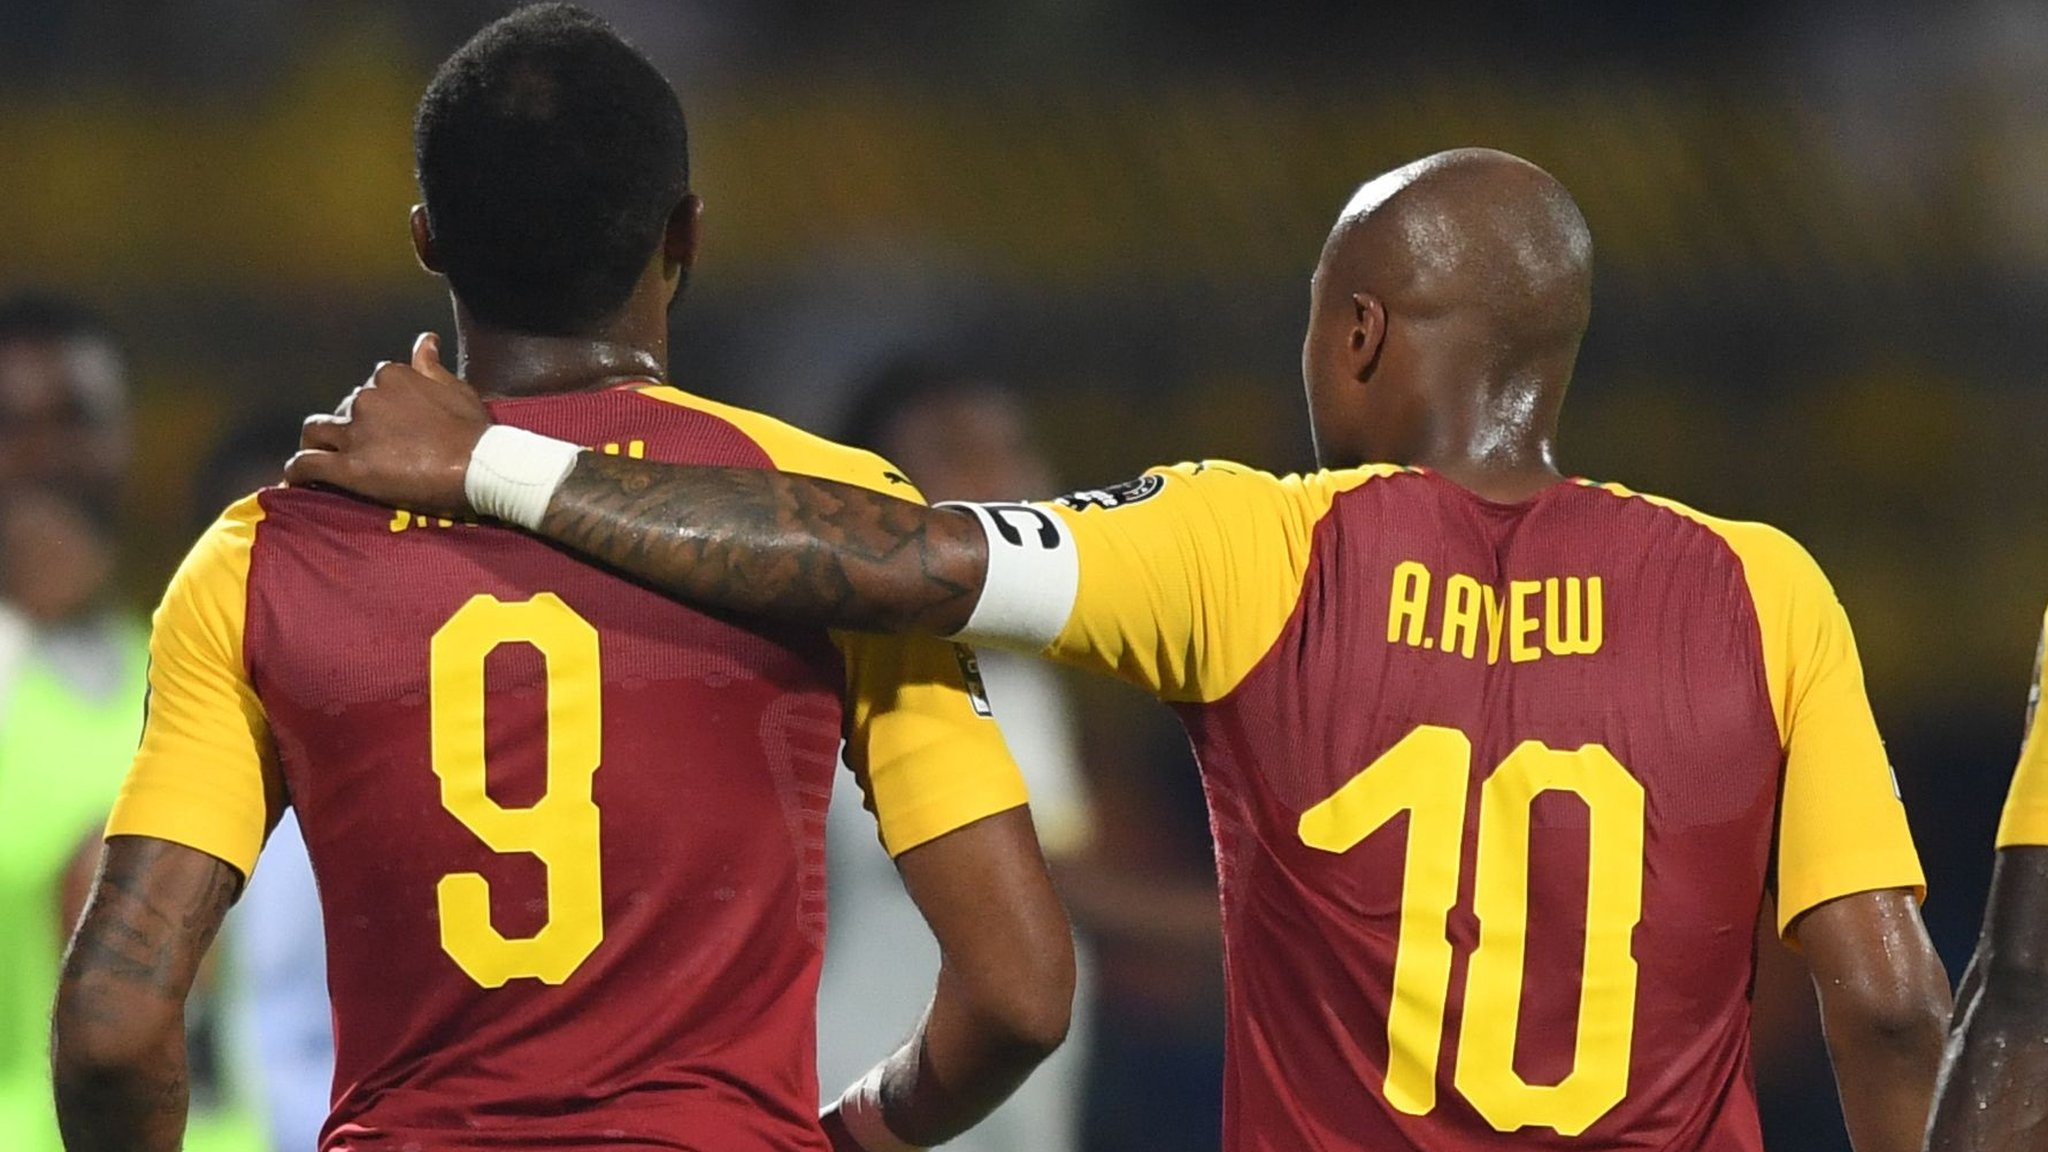 Africa Cup of Nations: Ayew brothers on target as Ghana draw with Benin